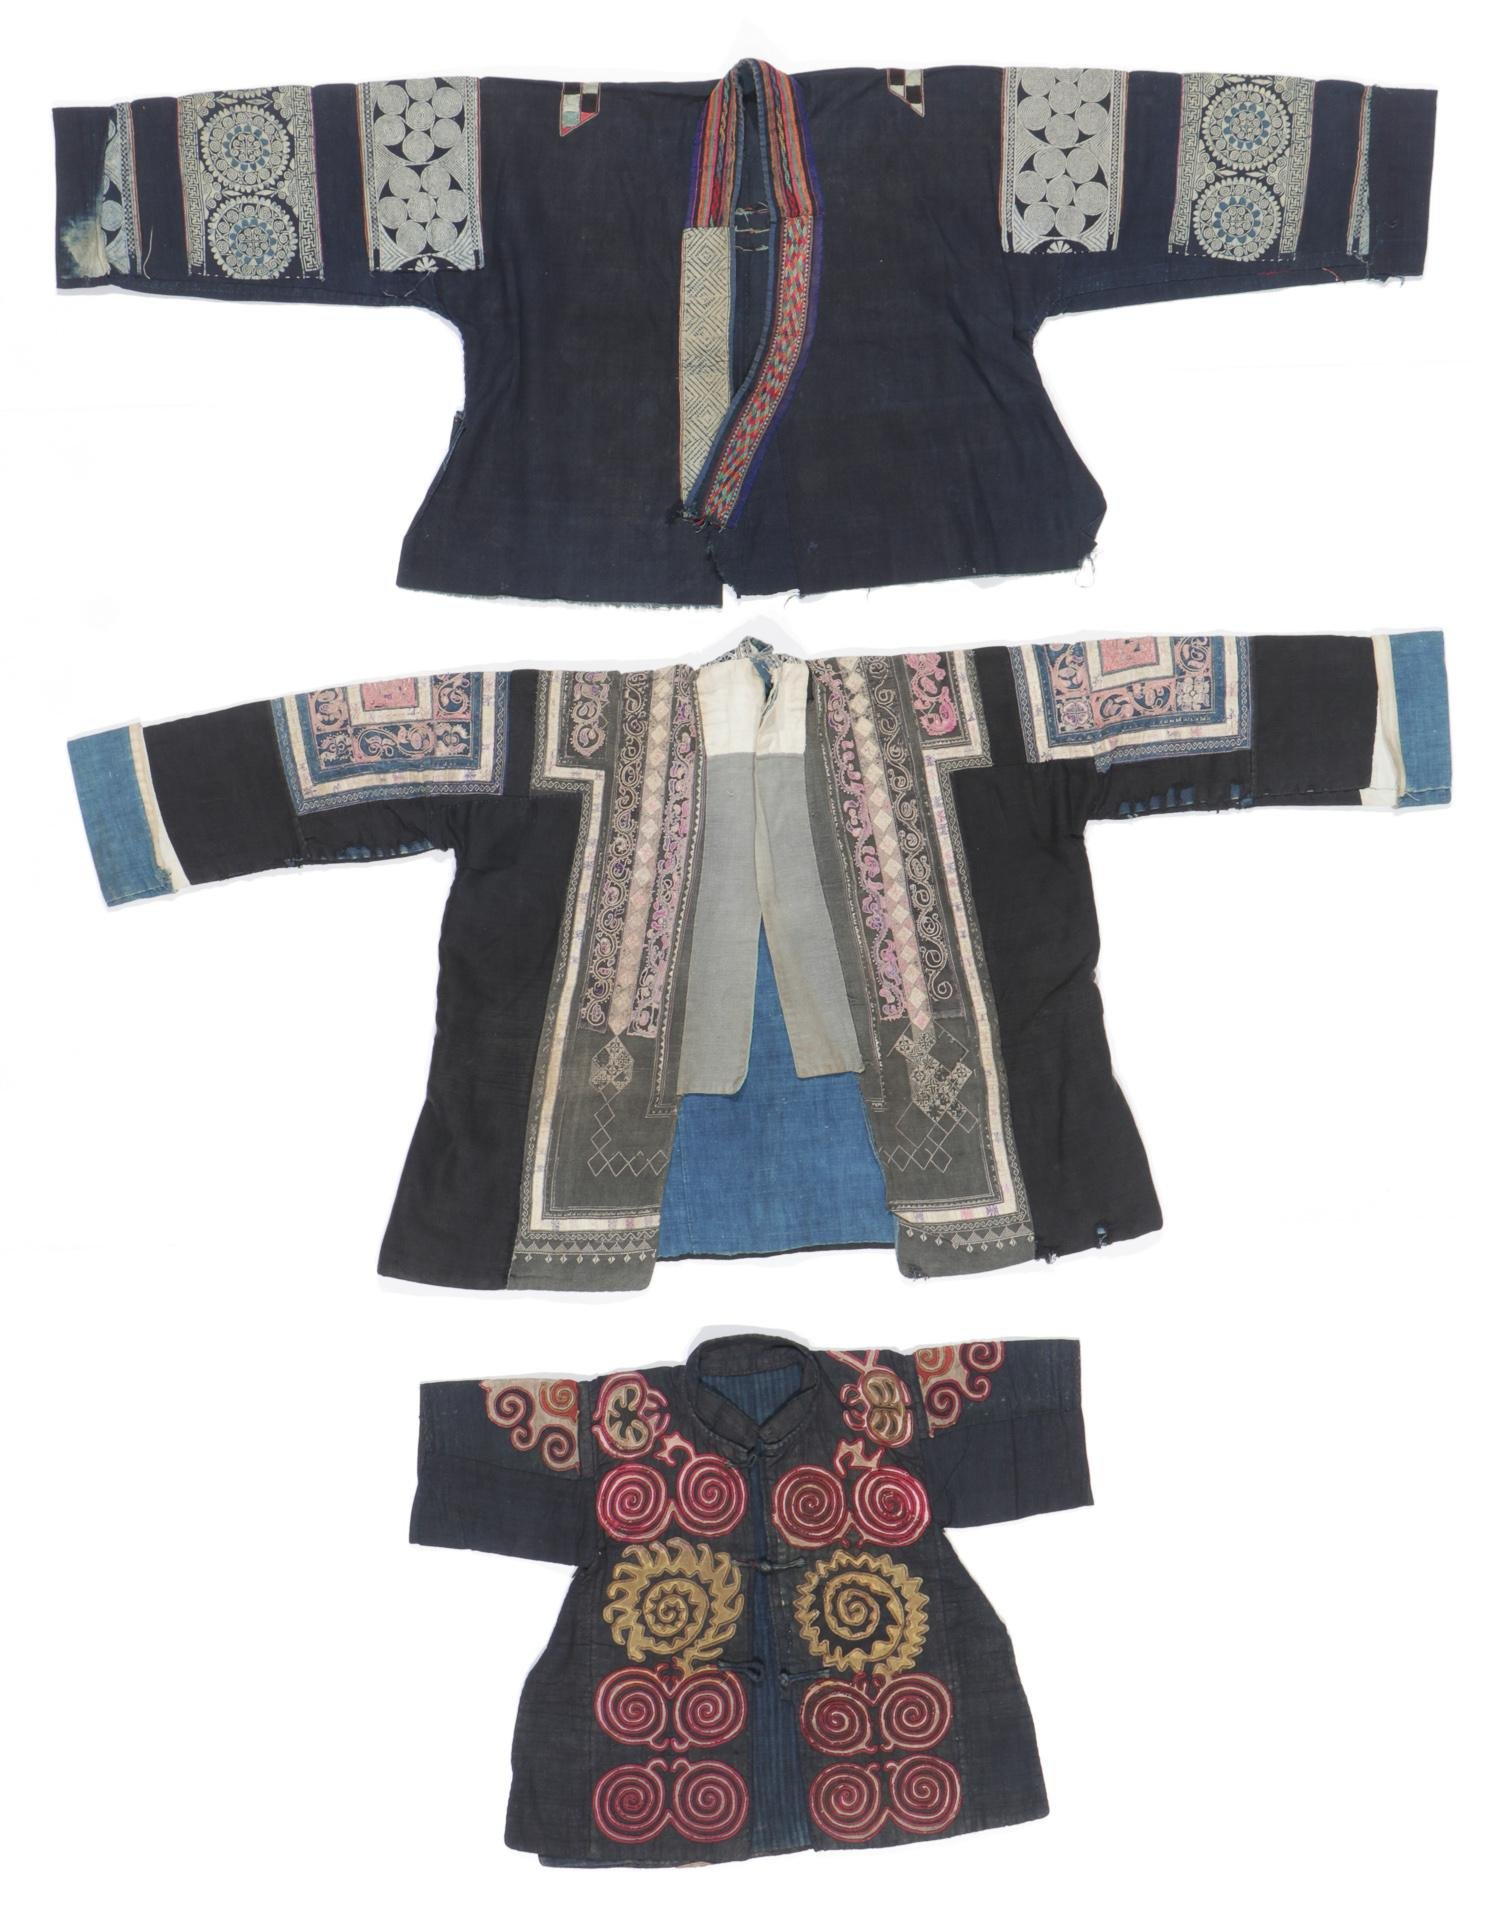 3 Old Silk Embroidered Jackets, Miao People, China